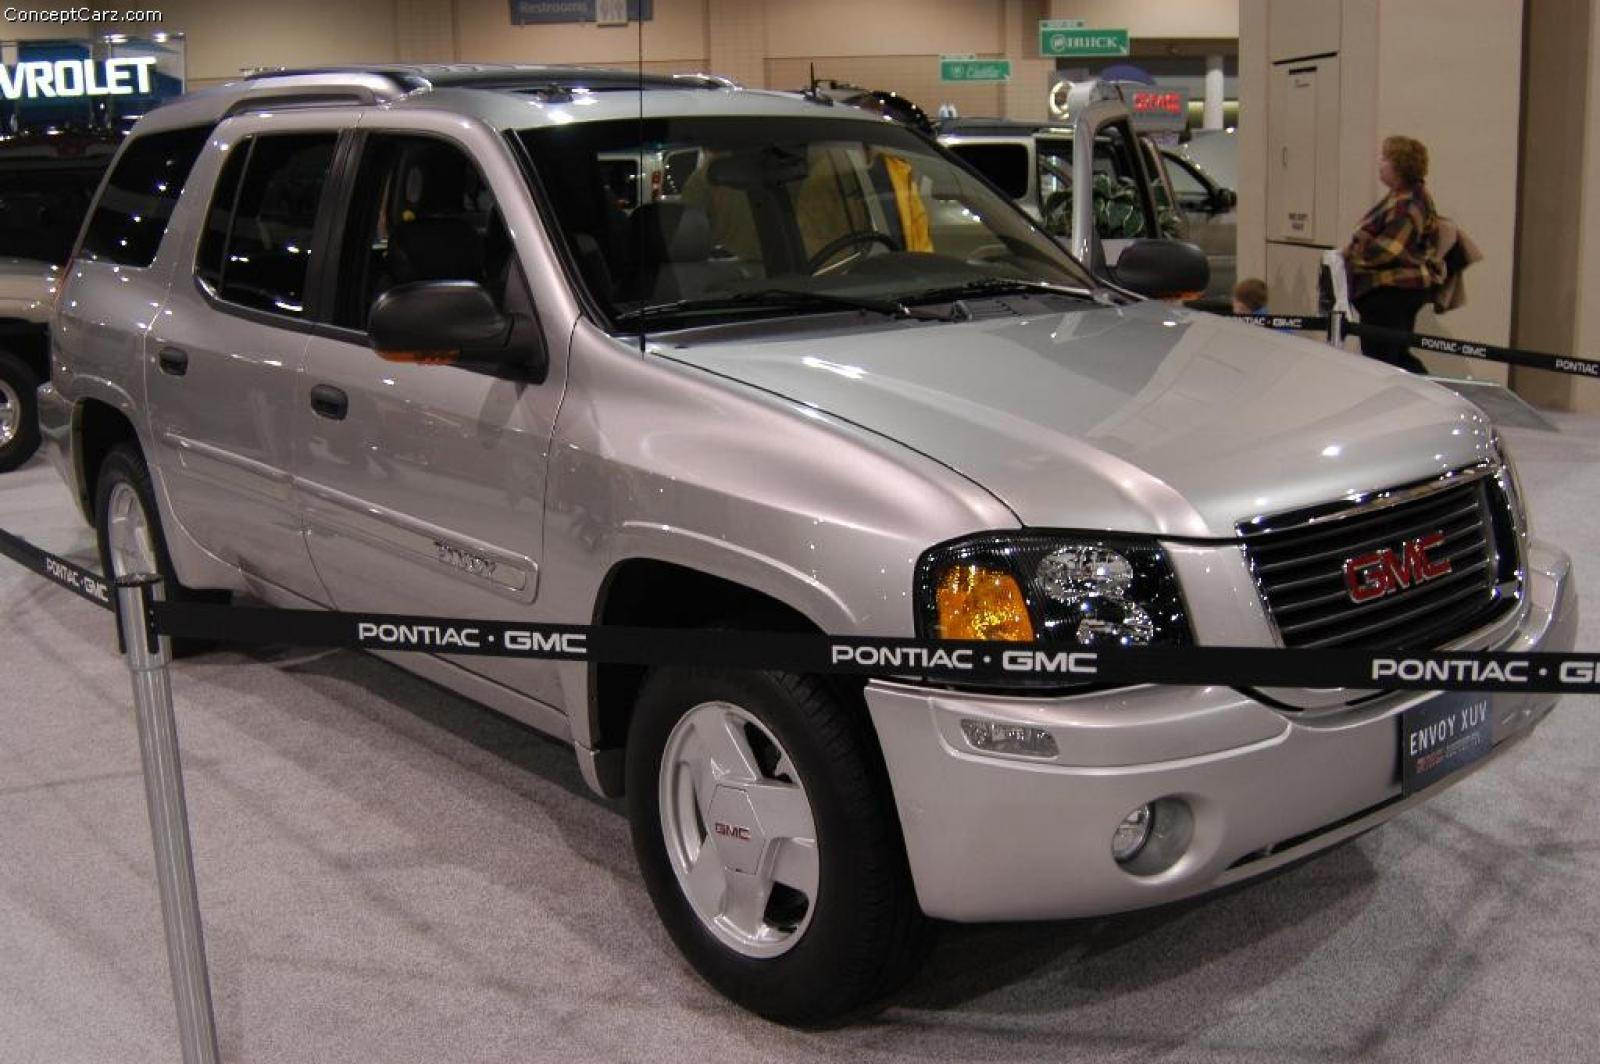 2004 gmc envoy xuv information and photos zombiedrive. Black Bedroom Furniture Sets. Home Design Ideas